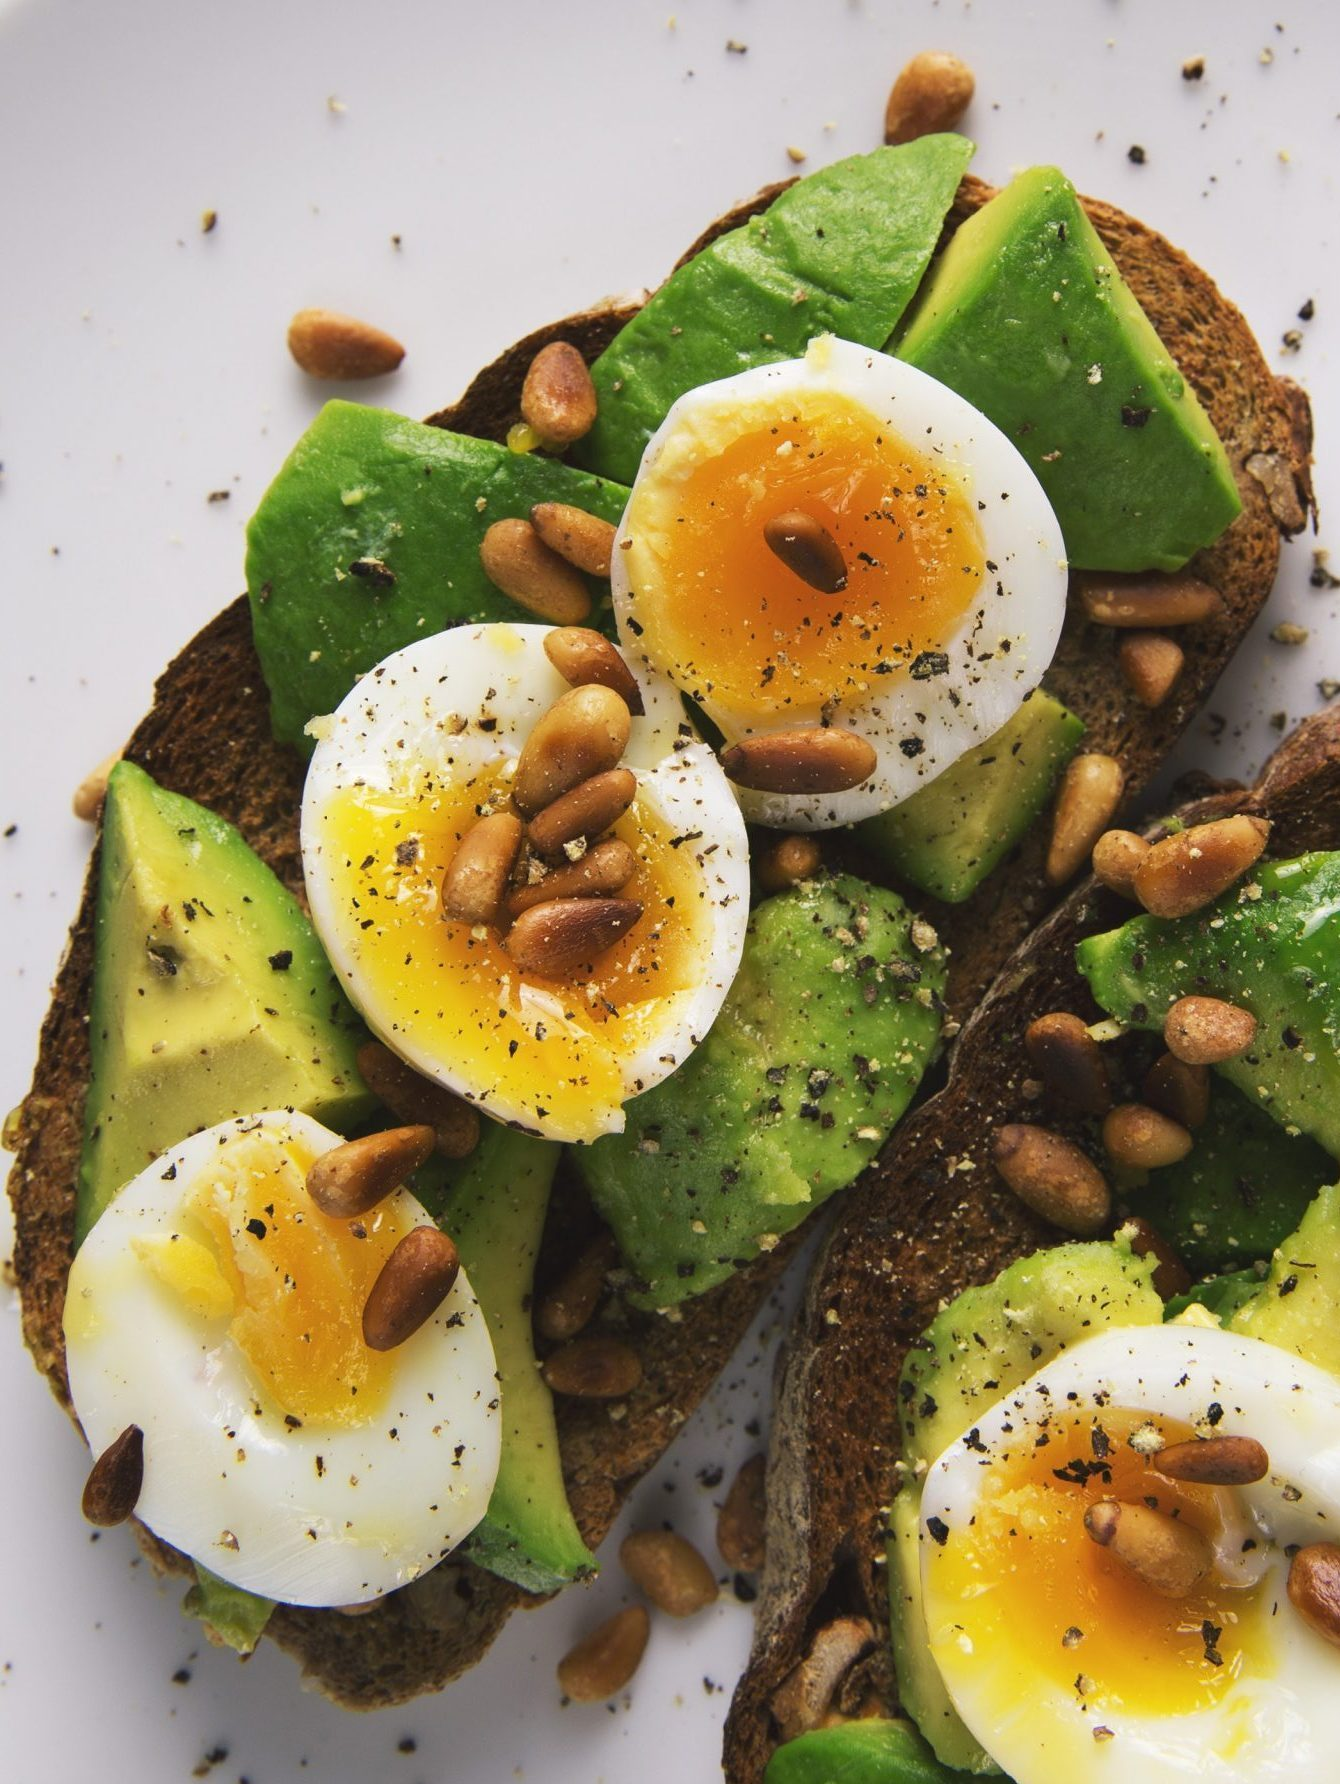 appetizer-avocado-bread-breakfast-566566